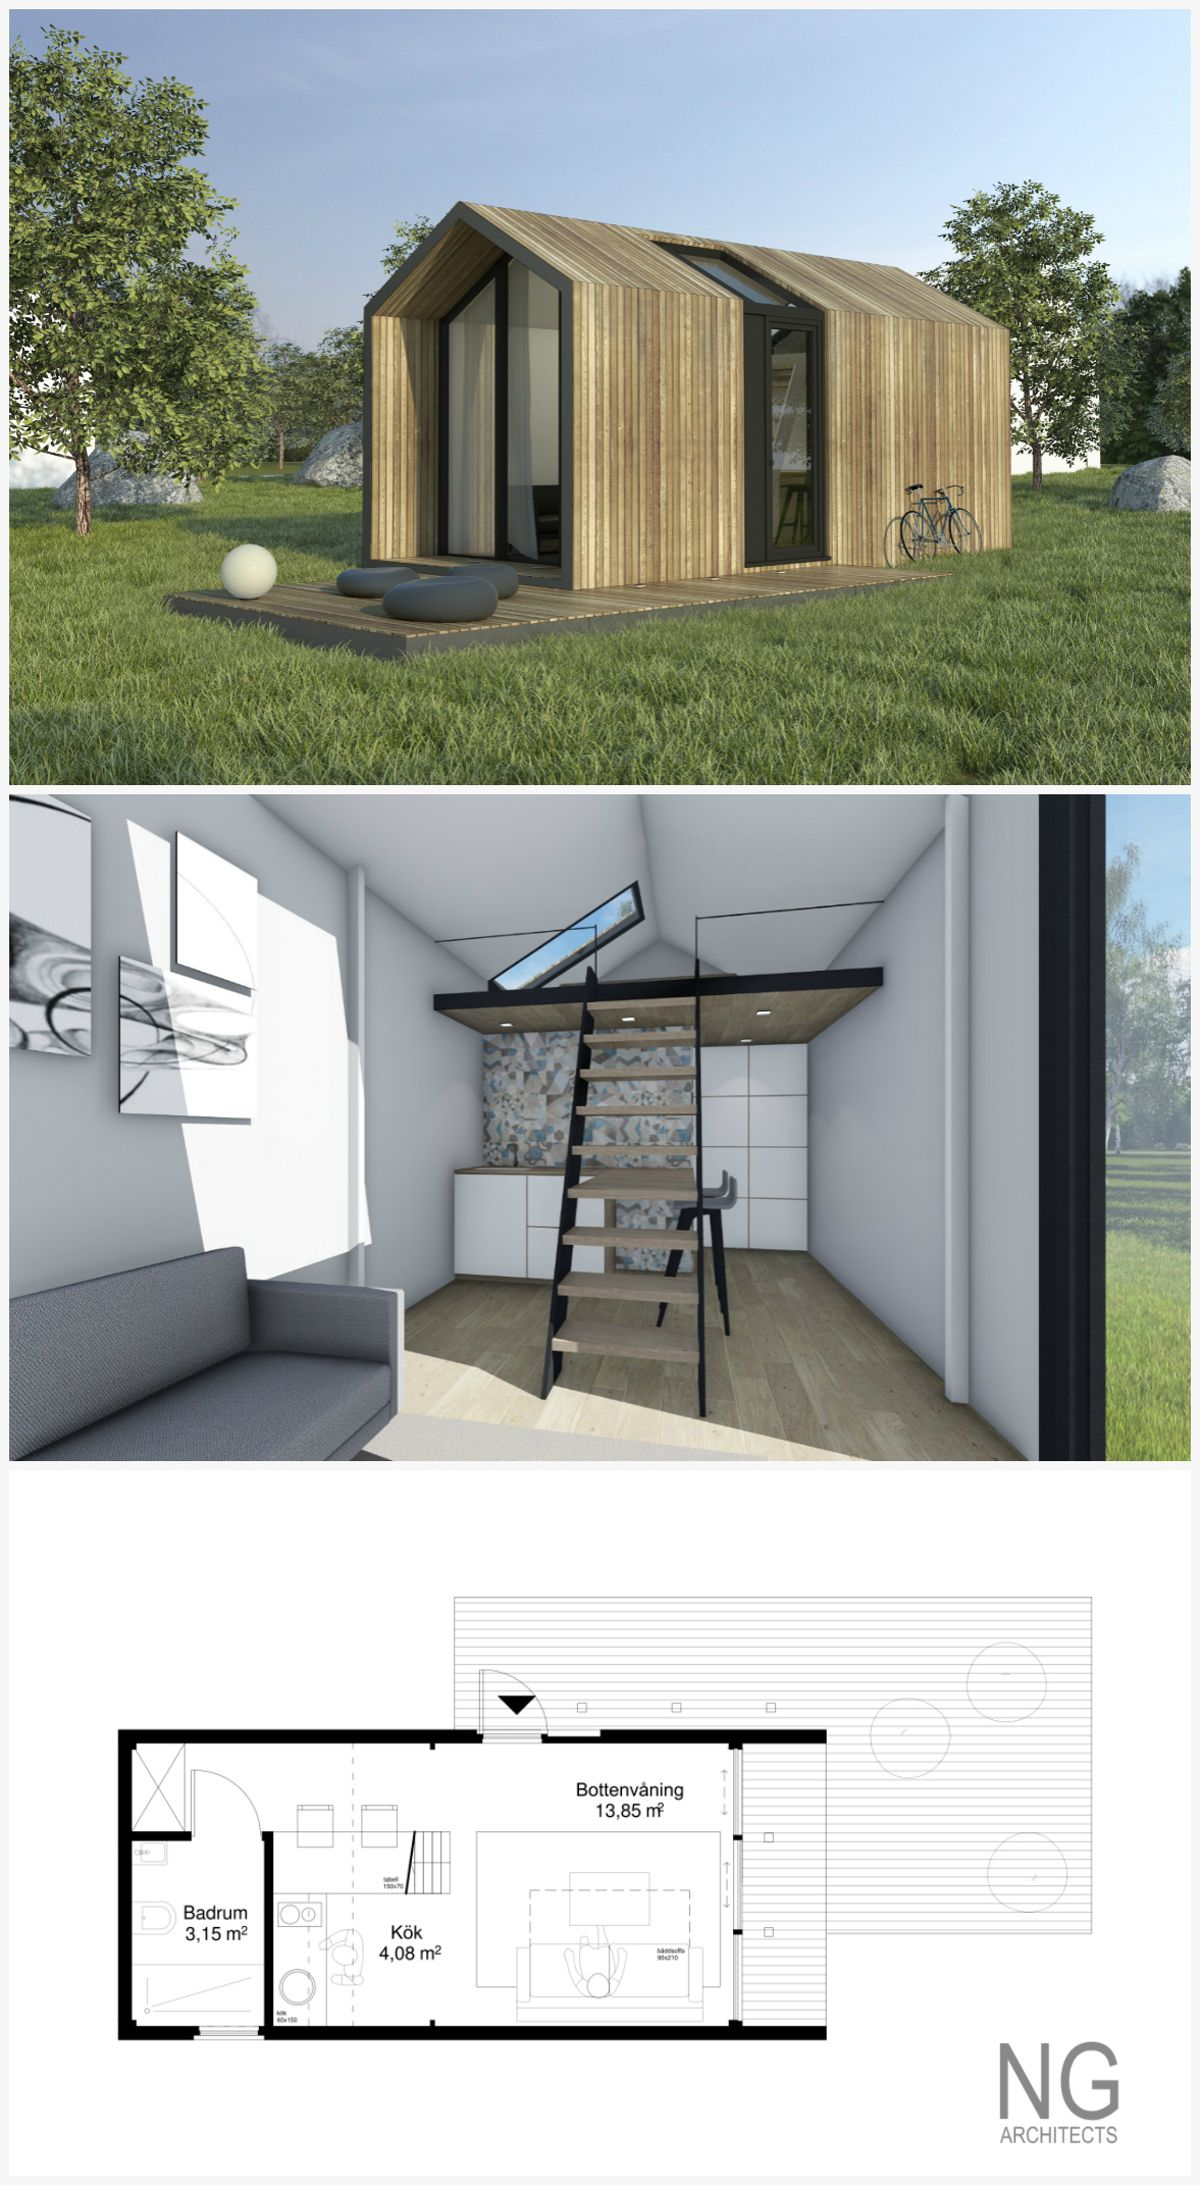 Corona - 25 m small house (attafallshus) designed by NG architects on small home architecture, lightweight house designs, compact home designs, contemporary small home designs, compact modern house designs, small bungalow designs, small compact bedroom designs, small compact home, small houseboat designs, small compact bathroom, small house interiors, small contemporary house,